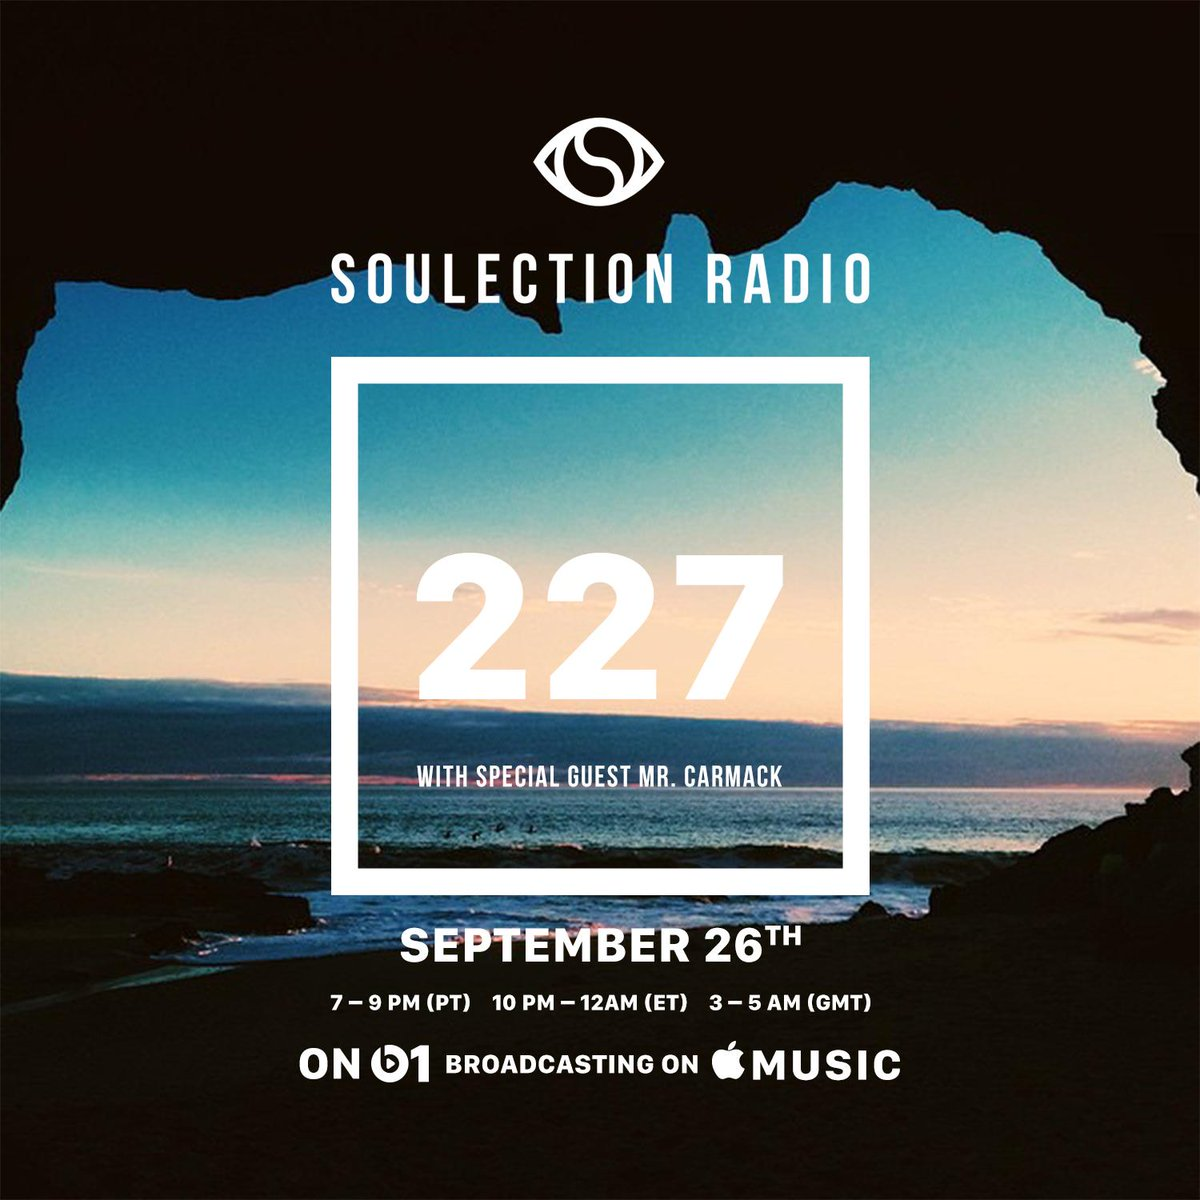 30 mins 'till @mrcarmack destroys radio. @Soulection #227 with @J0EKAY is next on @Beats1. https://t.co/5BCVGCNxRK http://t.co/XZHYtpfKui